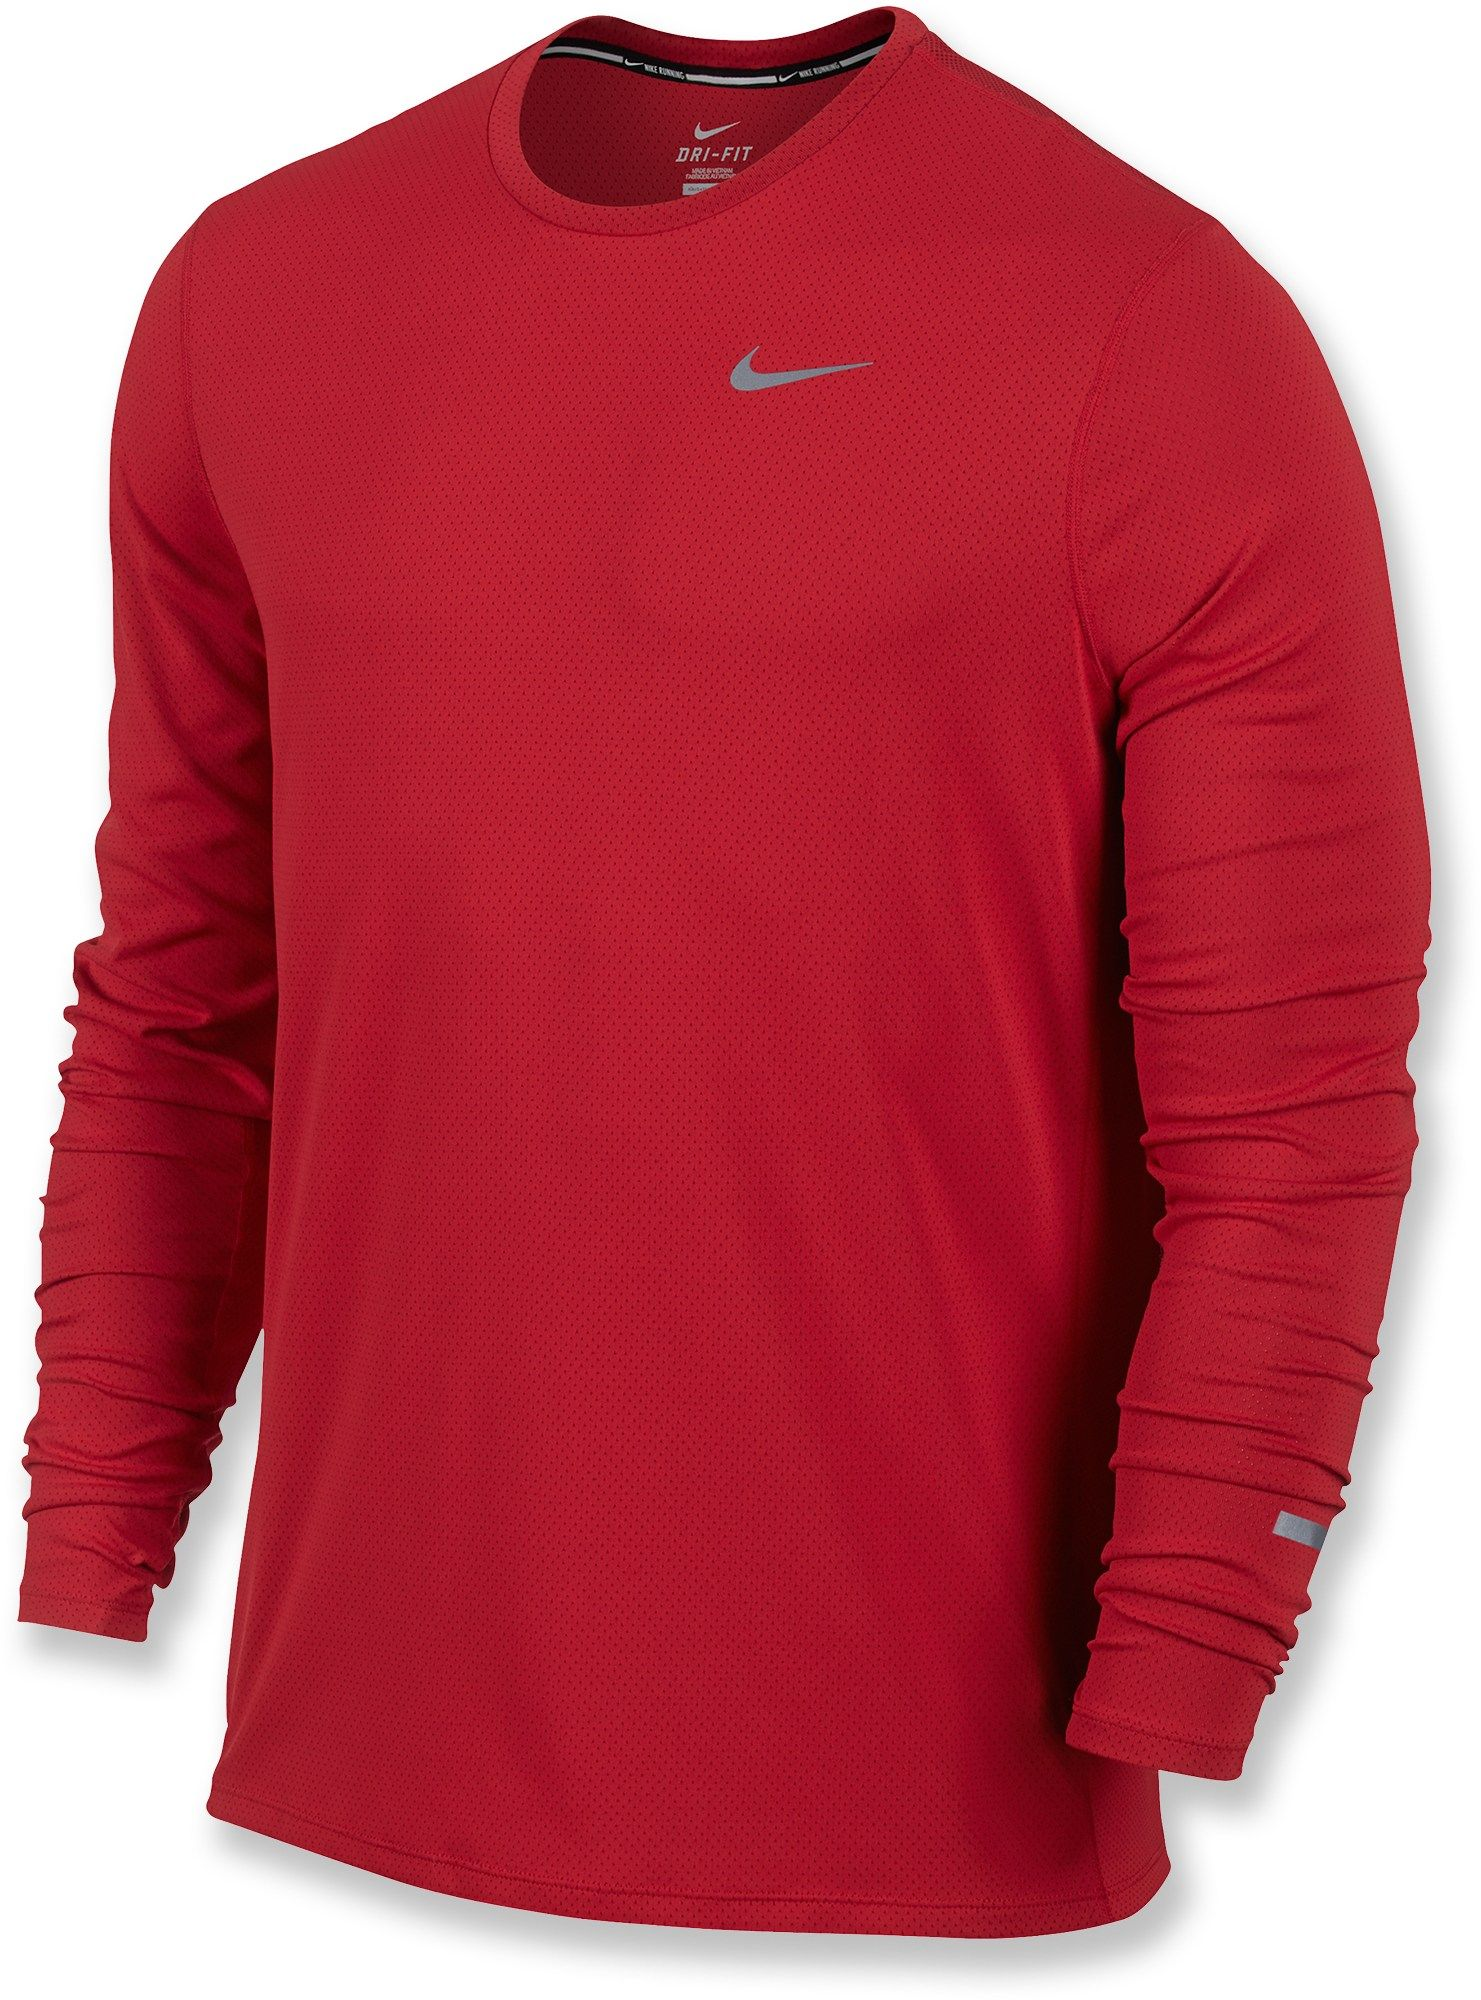 d50f8b415 Dri-FIT Contour Long-Sleeve T-Shirt - Men's | Clothes | Nike long ...